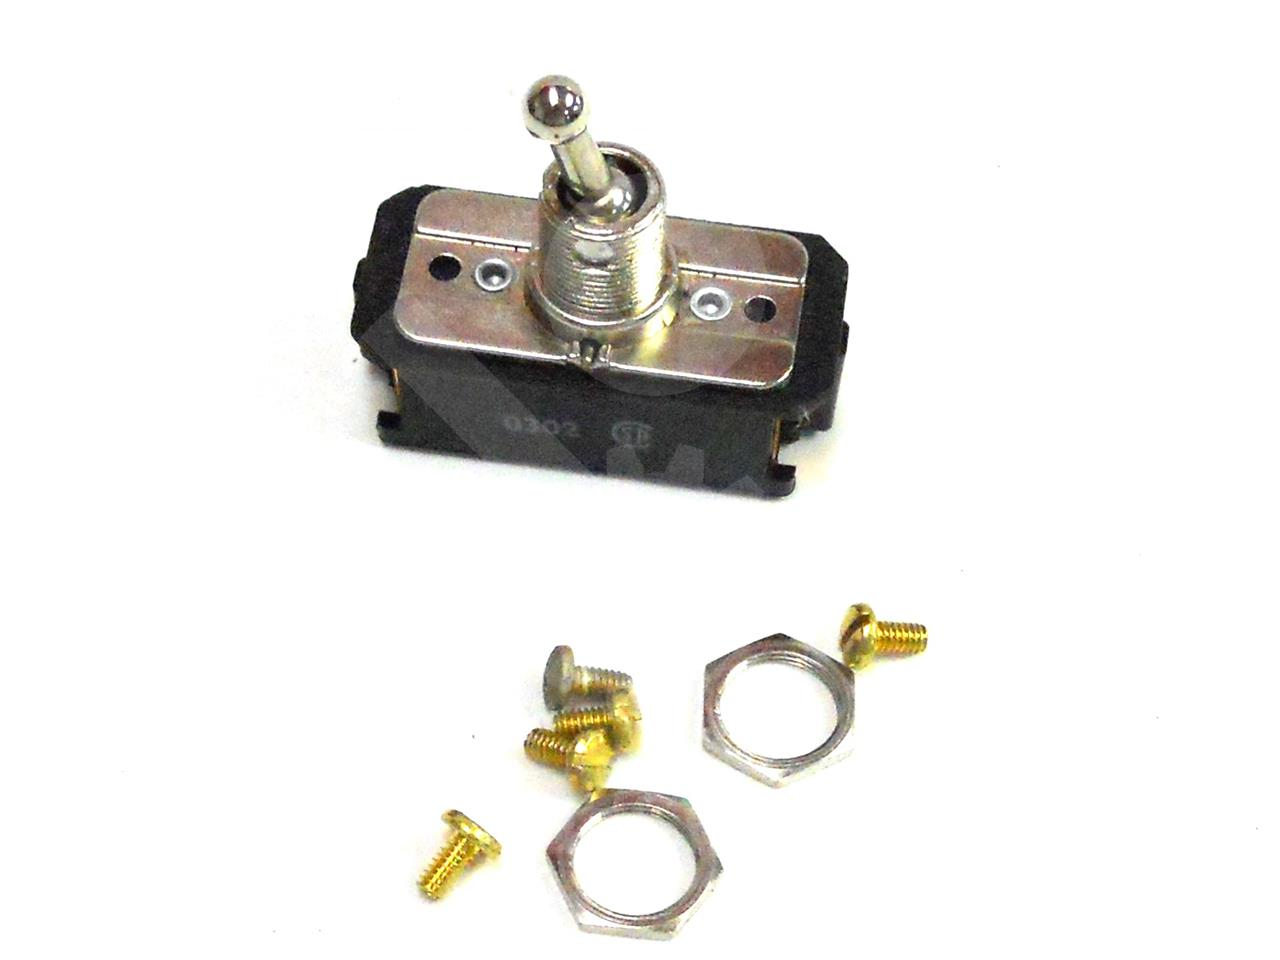 7320K13 ITE SPRING MOTOR DISCONNECT TOGGLE SWITCH NEW REPLACMENT FOR LK / K-LINE / HK